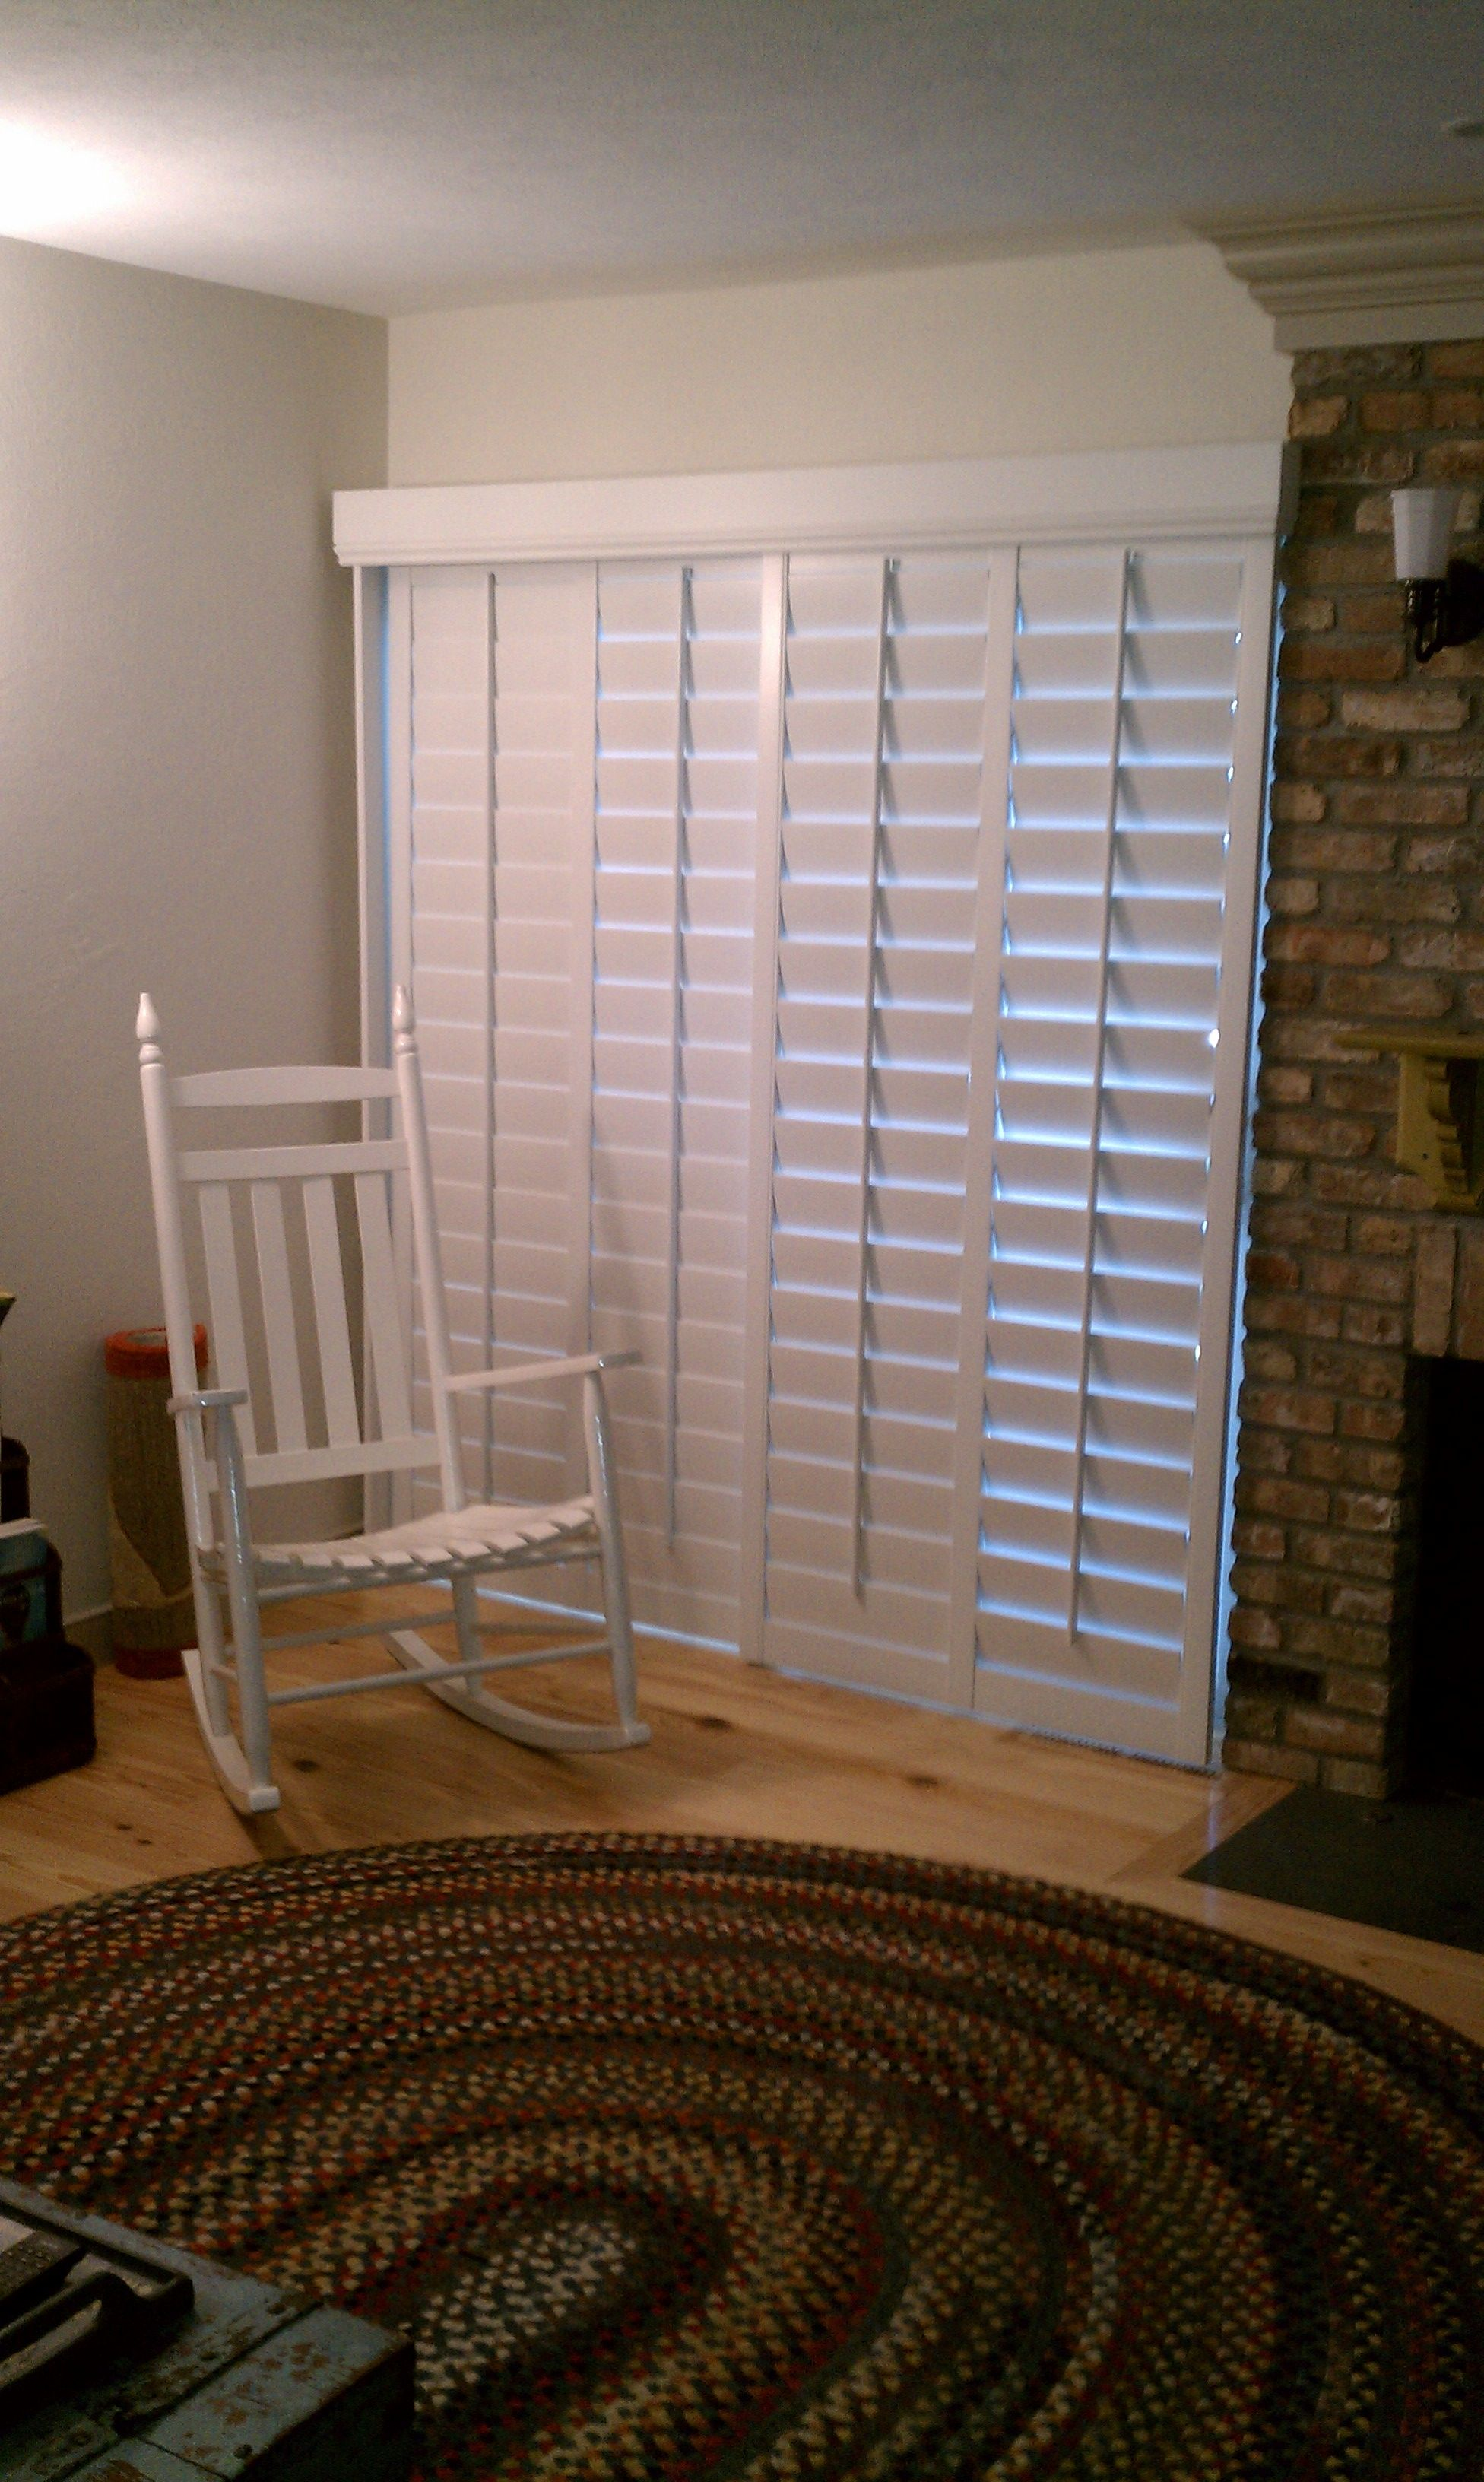 We can create shutters for a great window treatment to go on any